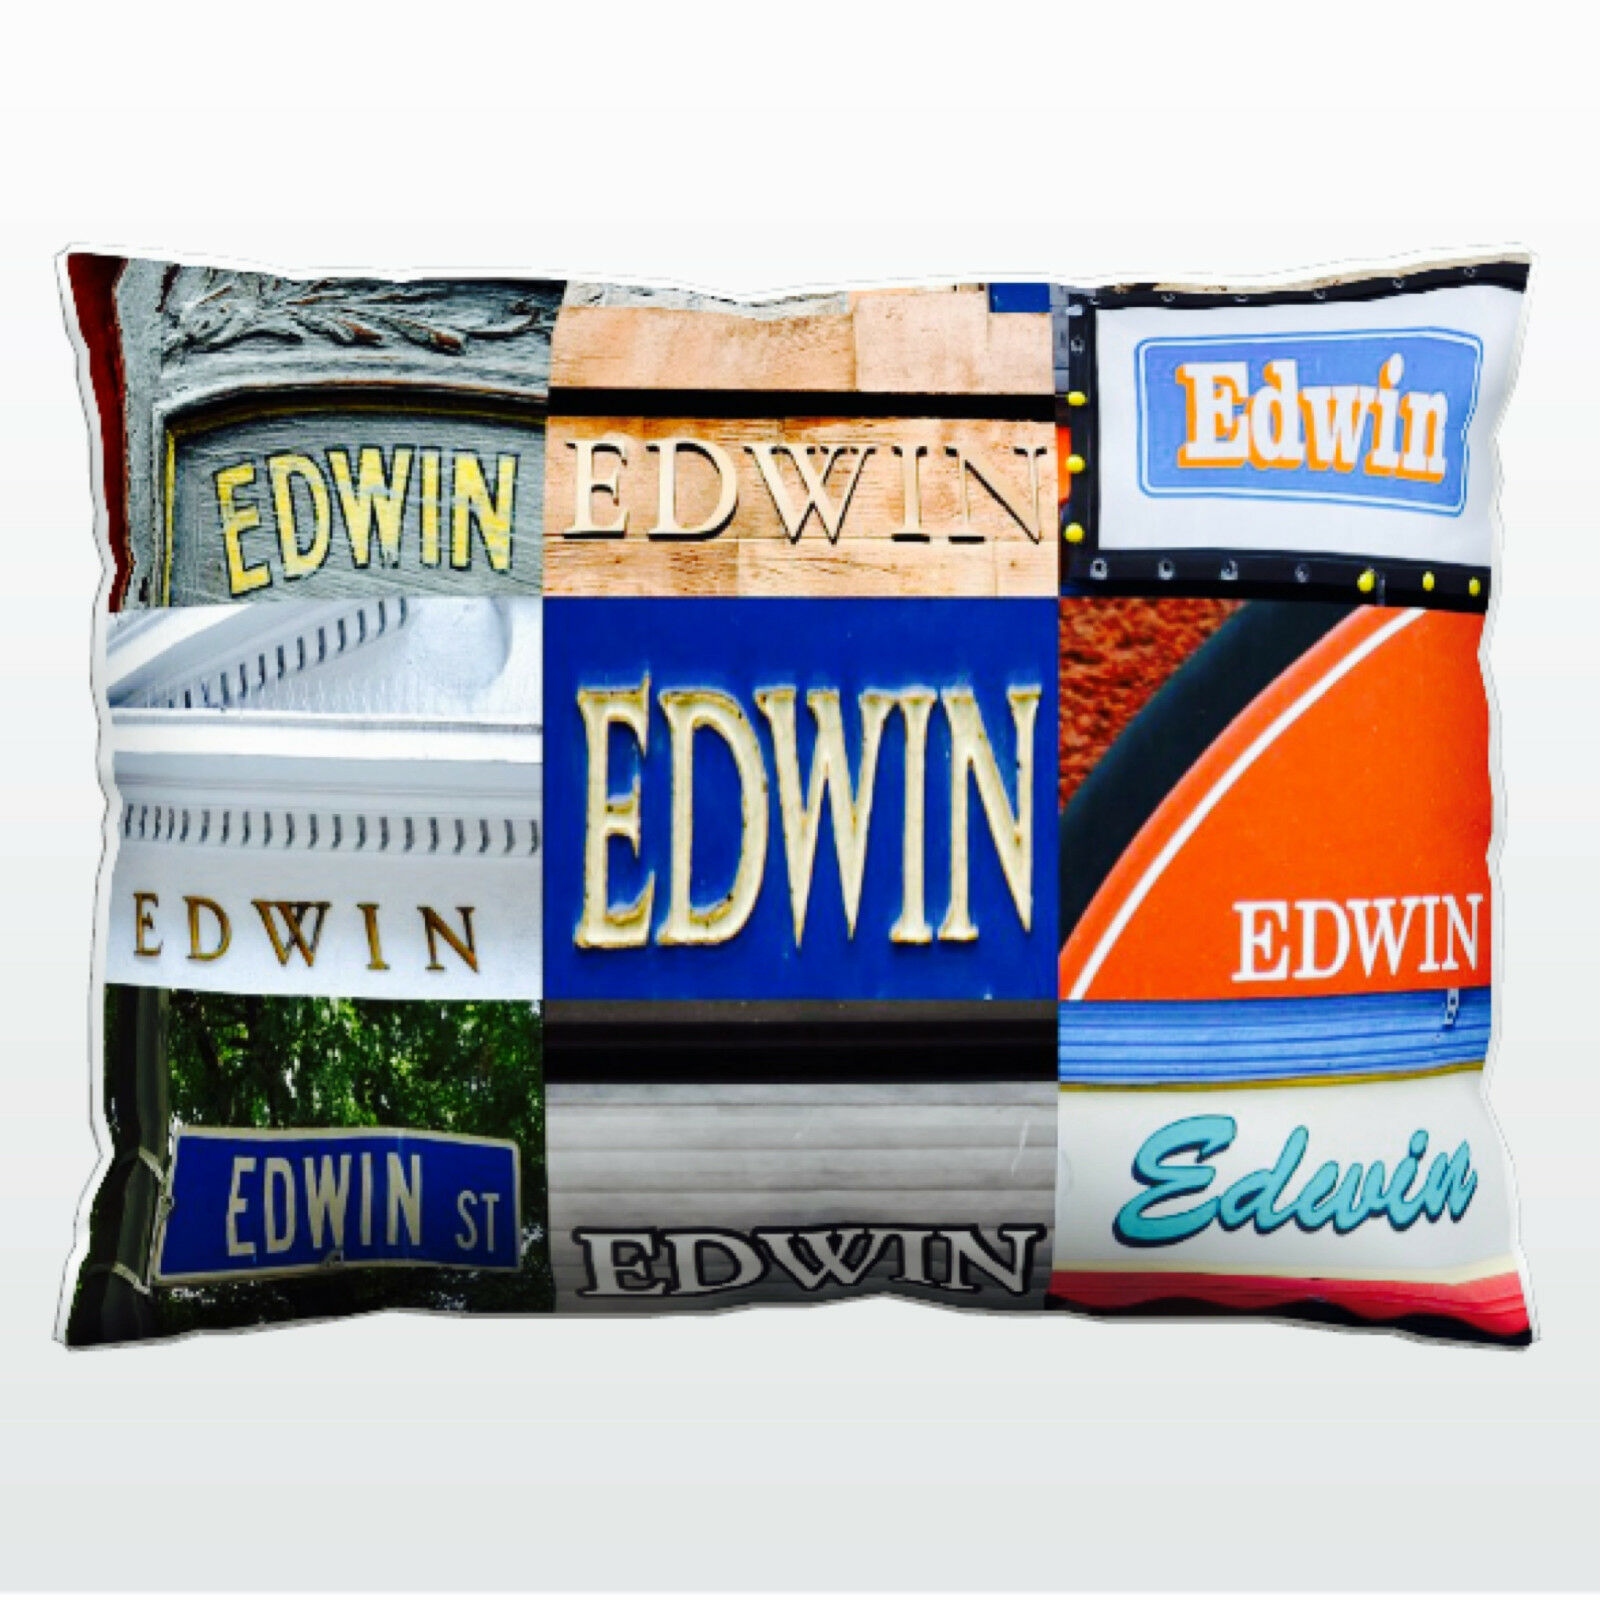 Personalized Pillow featuring the name name name EDWIN in photos of actual signs cf3049